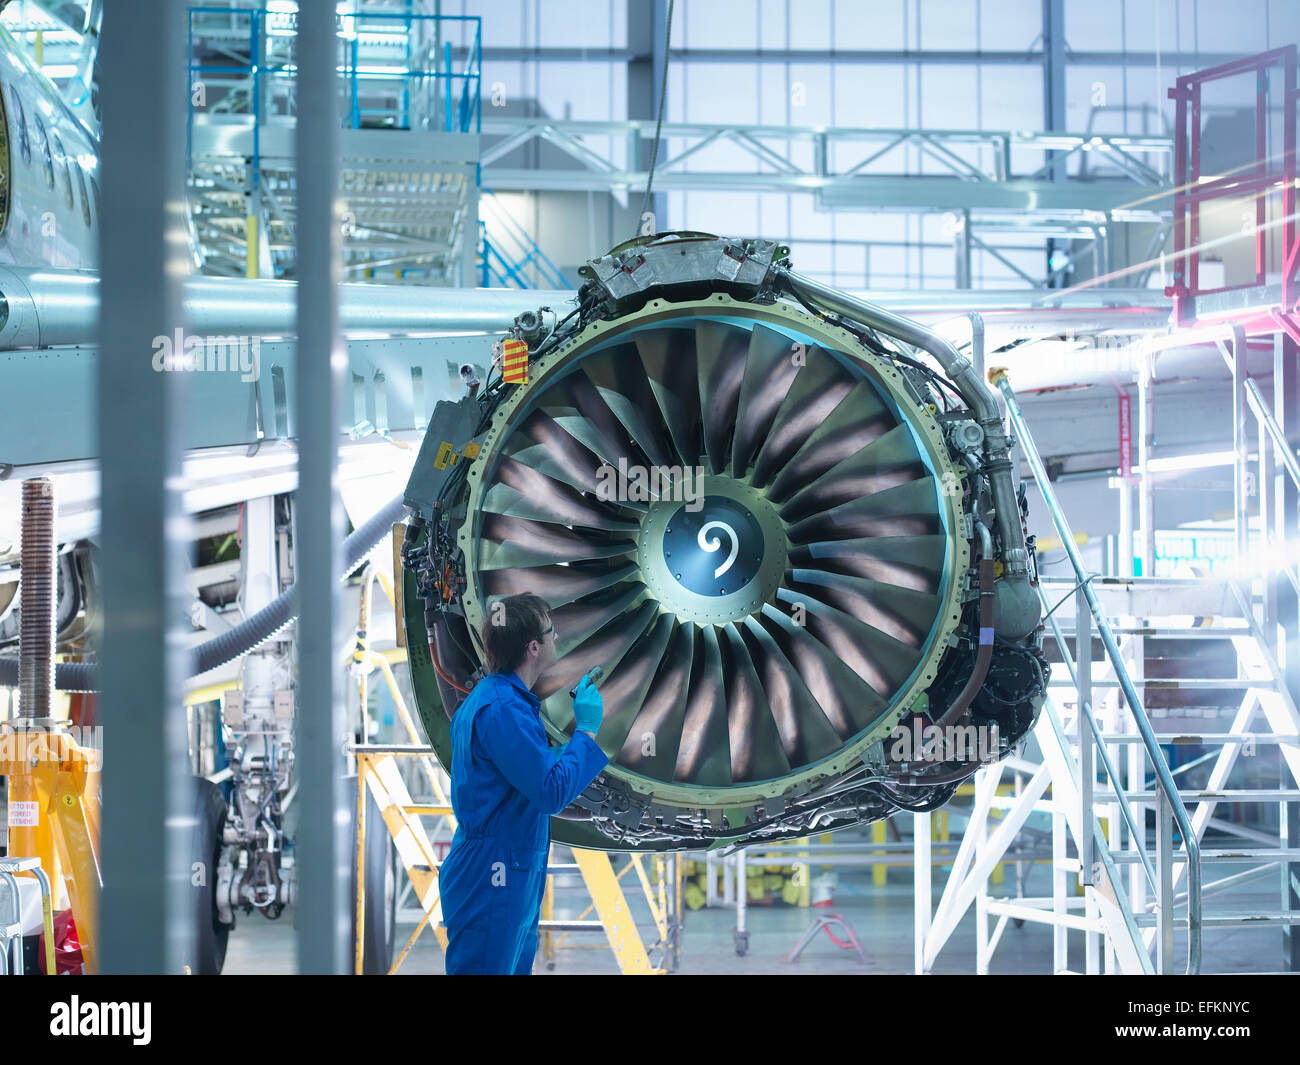 Engineer inspecting jet engine in aircraft maintenance factory - Stock Image